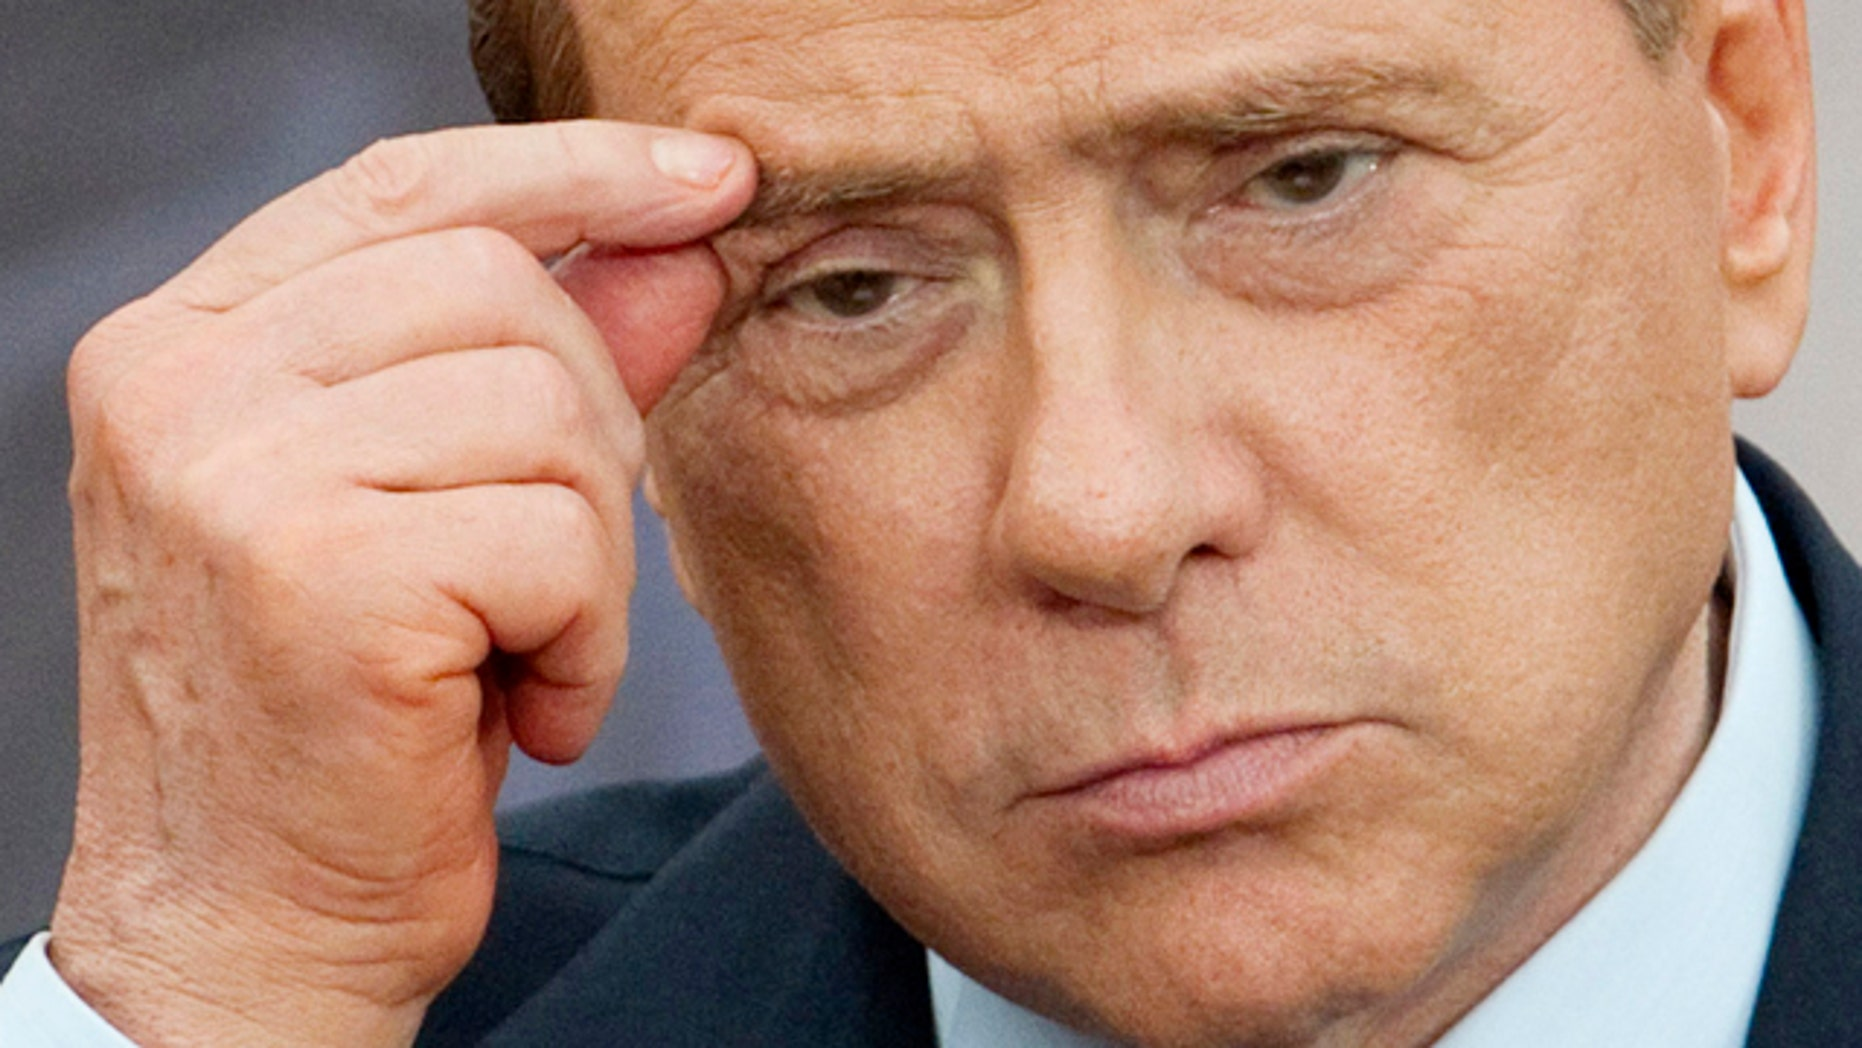 June 13: Italian Premier Silvio Berlusconi gestures during a joint press conference with Israel's Prime Minister Benjamin Netanyahu, in Rome.